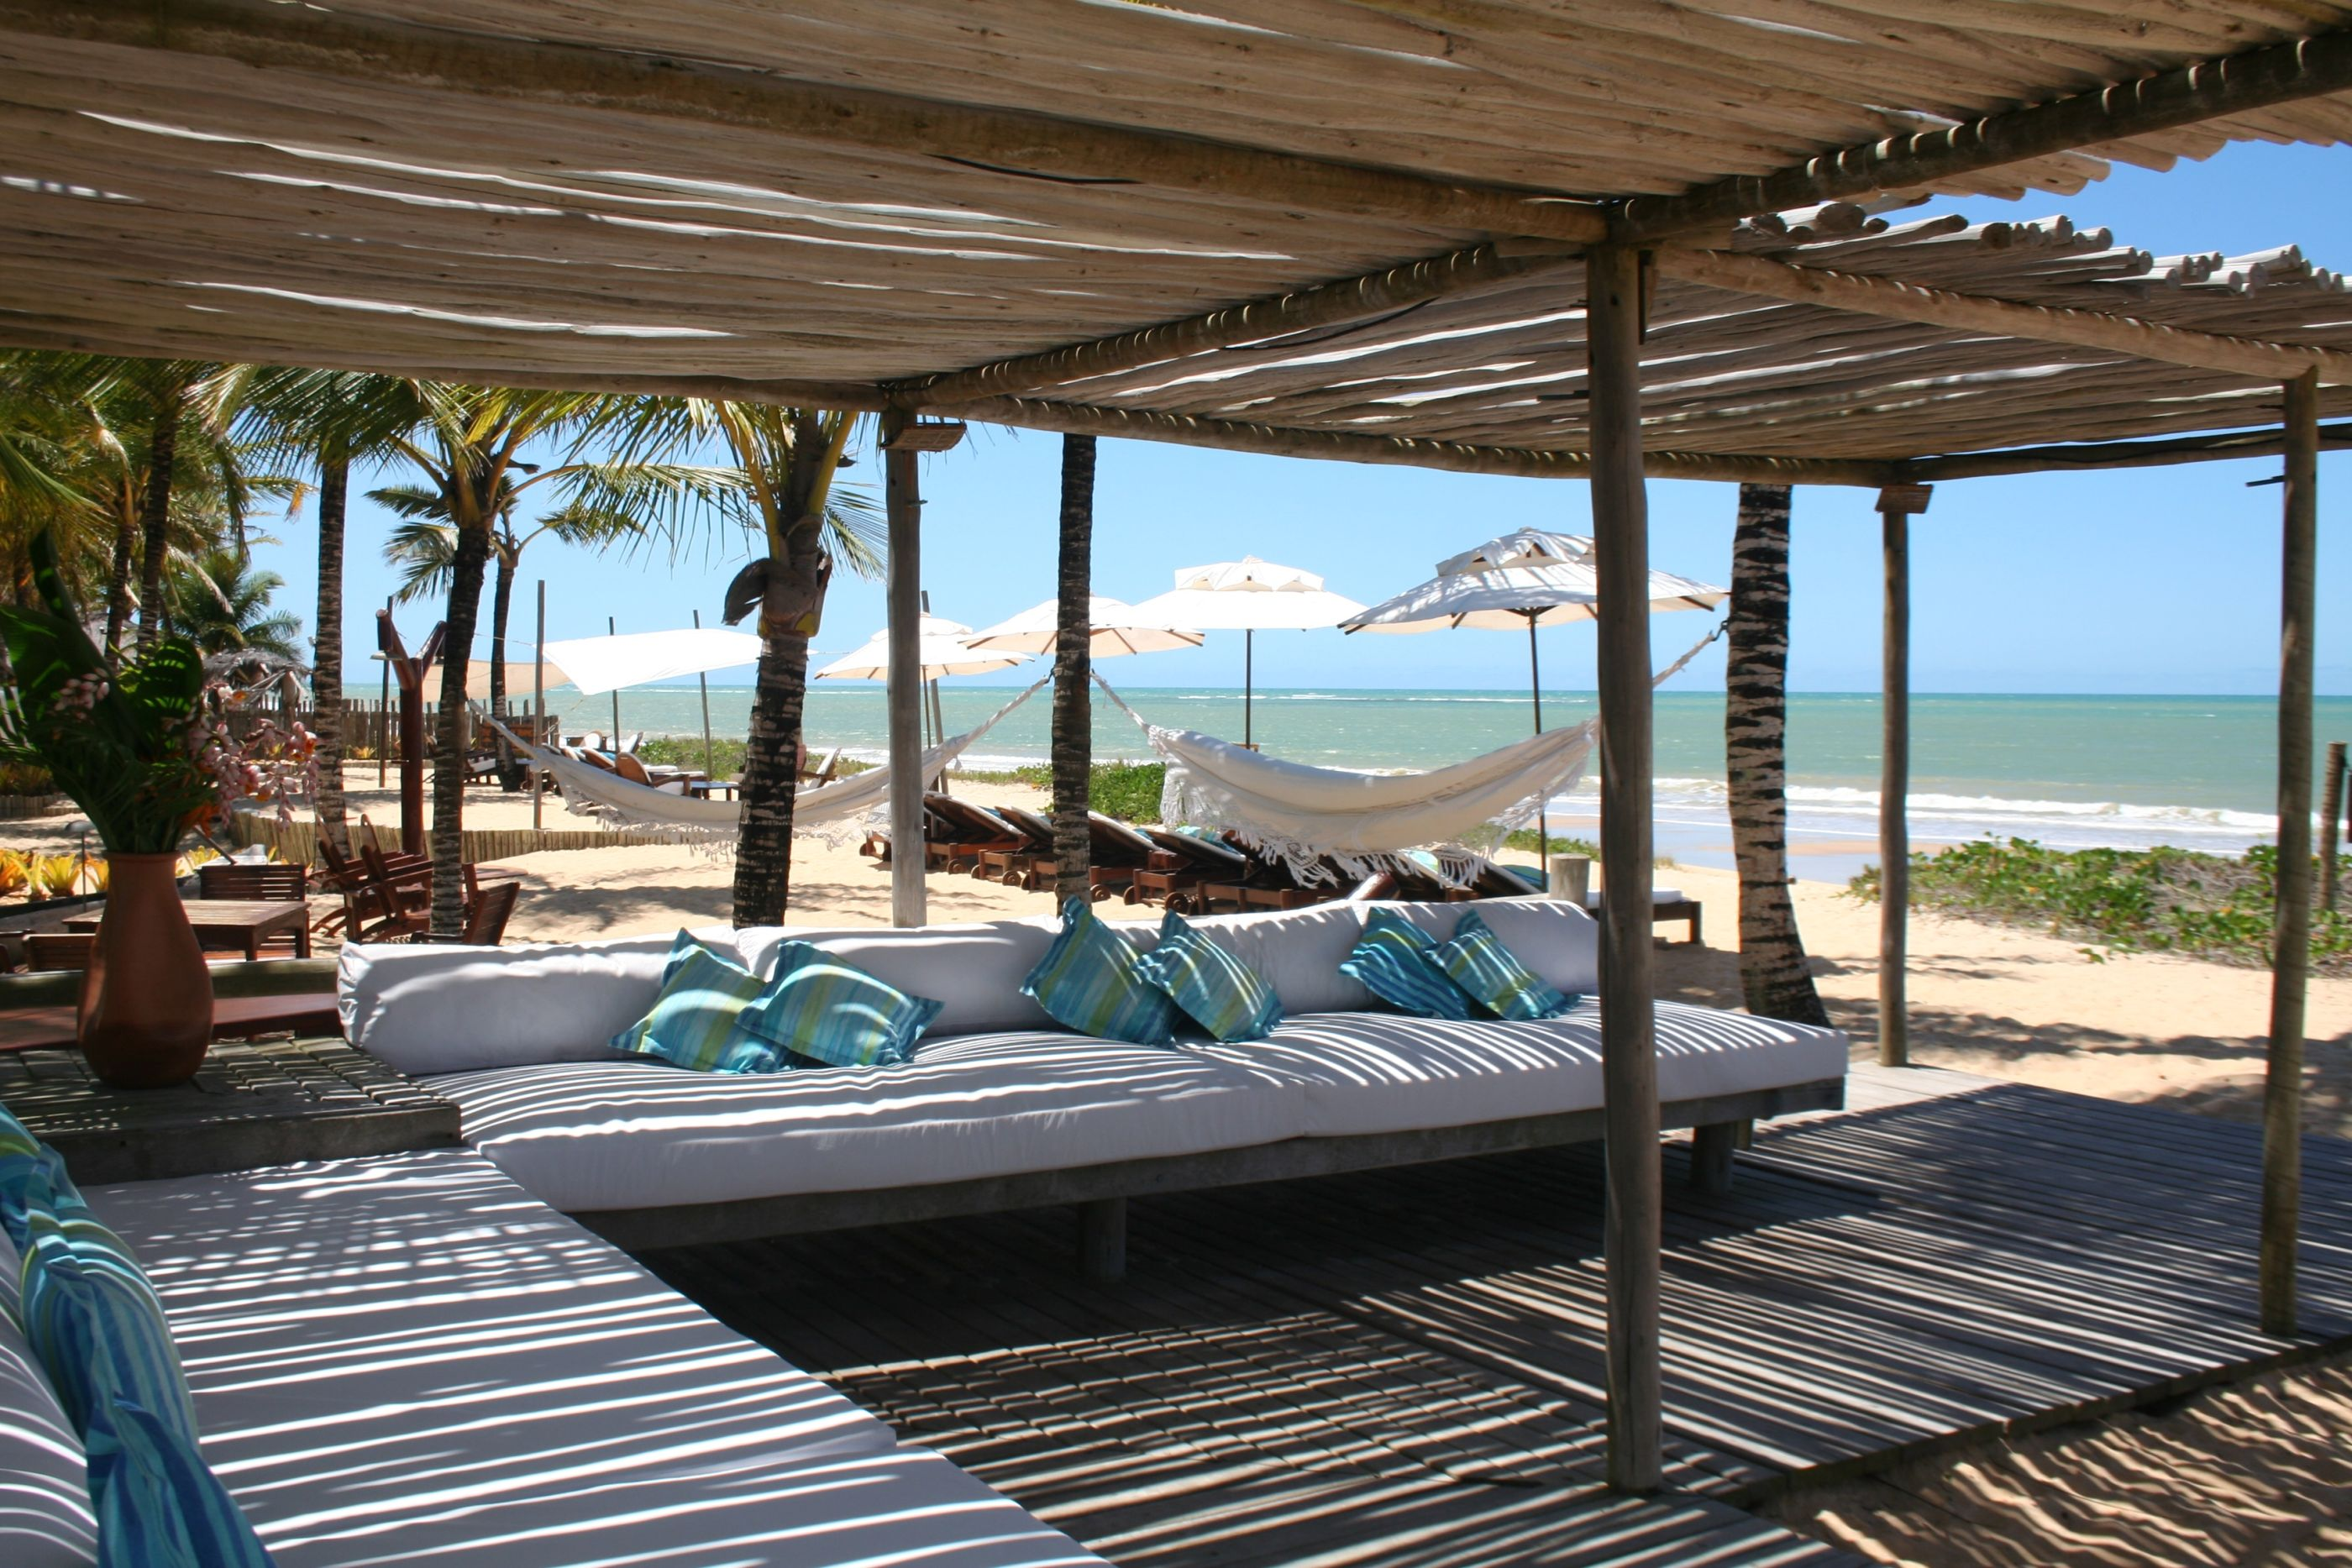 Villas de trancoso bahia brazil south american escapes for Luxury beach hotels